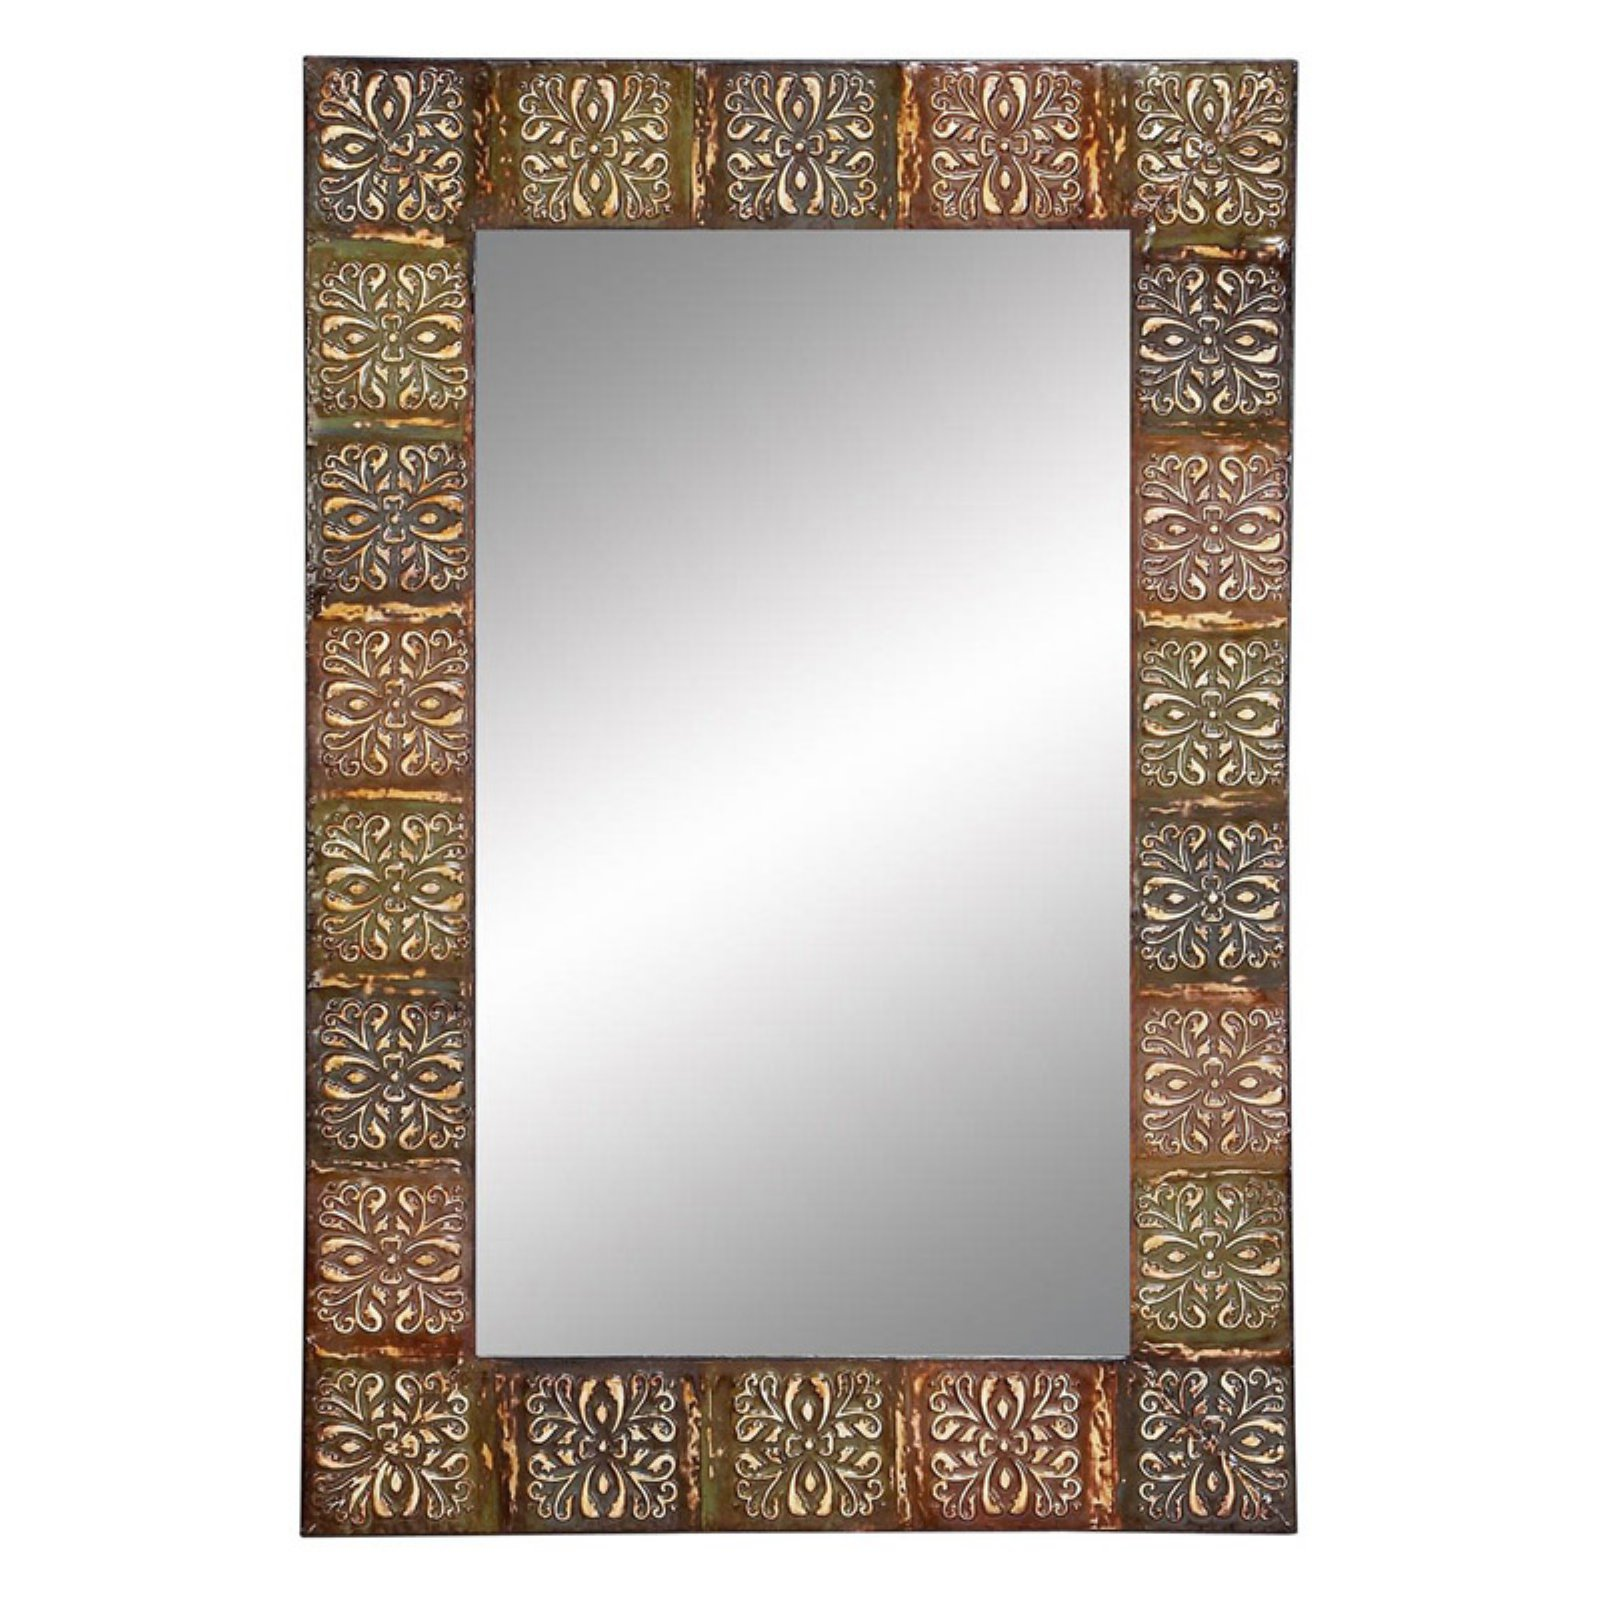 """Classic Floral Metal Wall Mirror by Decmode 36""""x24"""""""